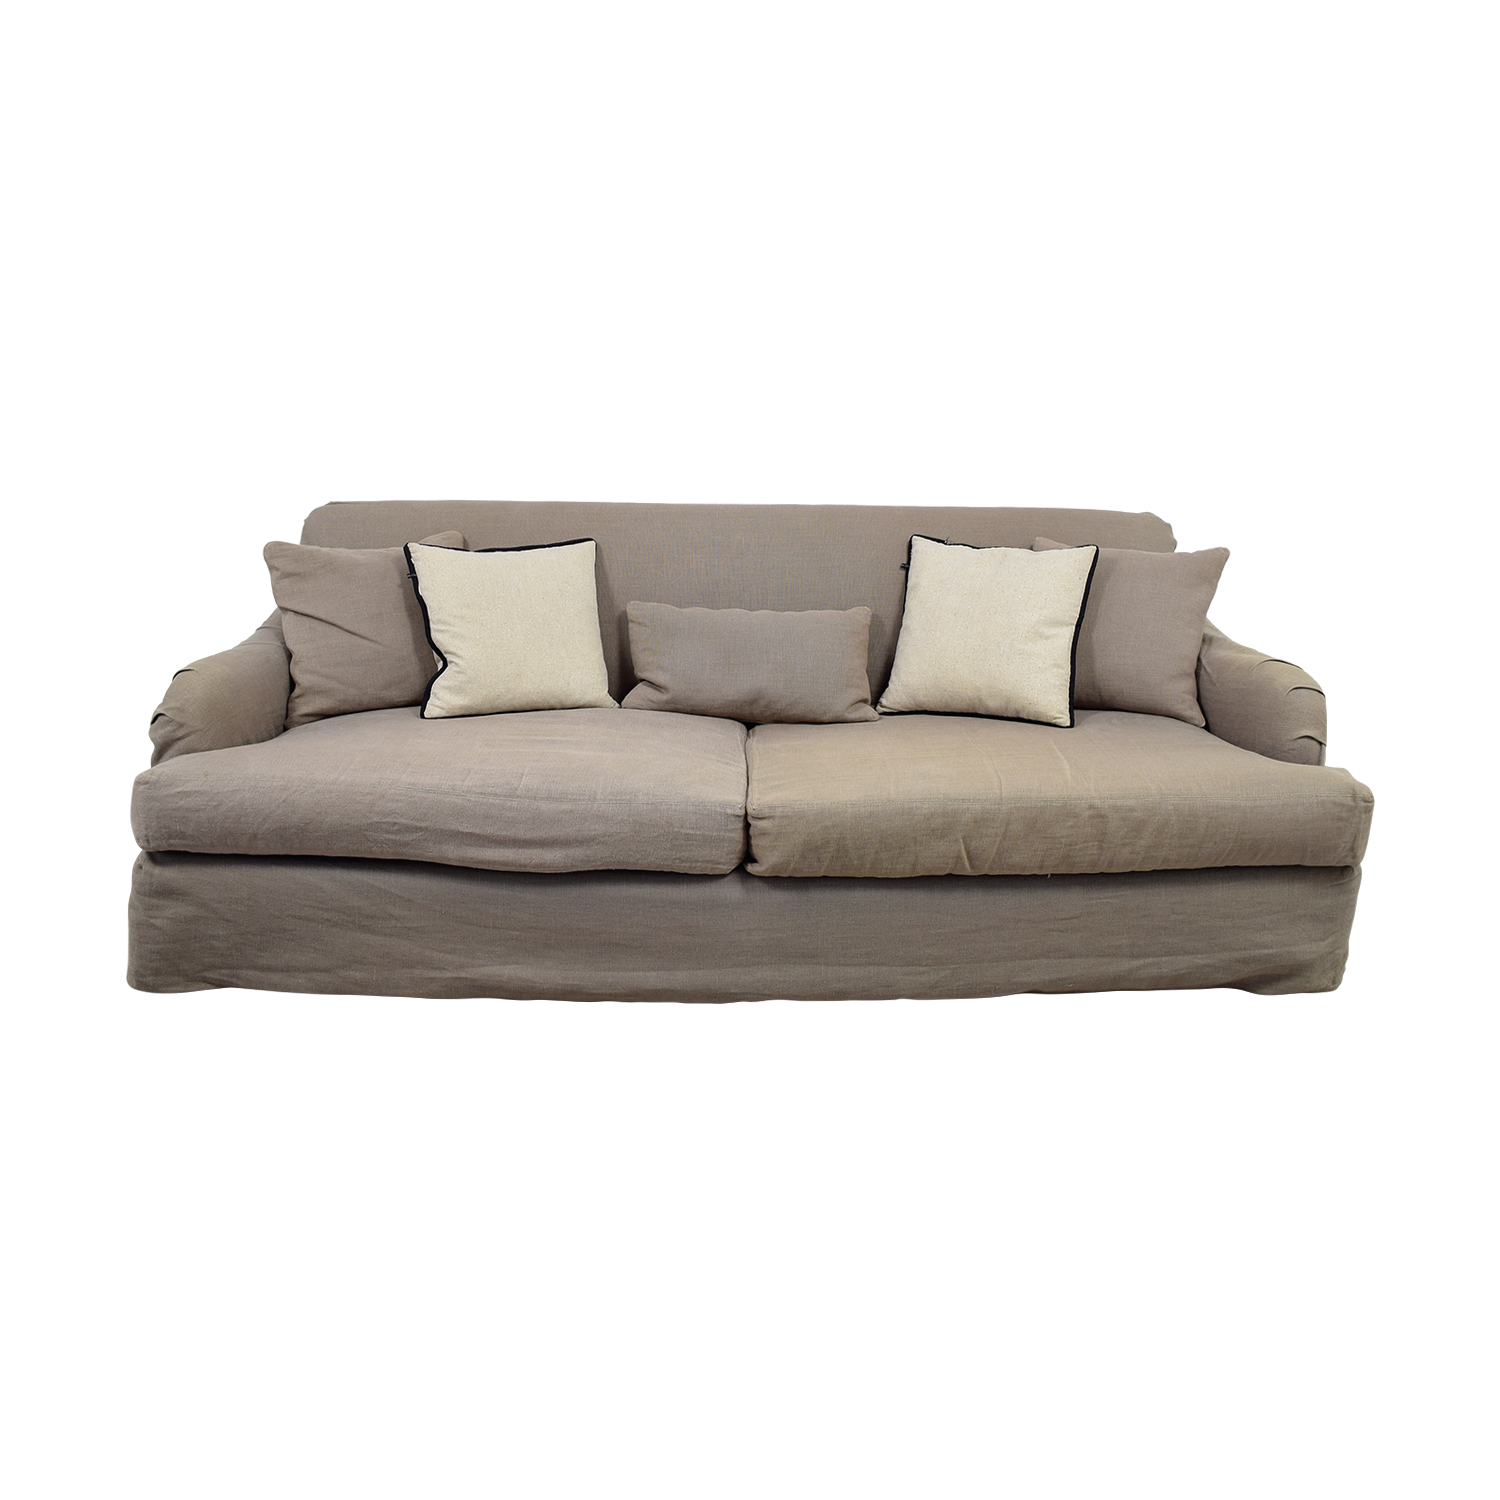 Cisco Brothers Cisco Brothers  Grey Linen Down Feather Filled Sofa price